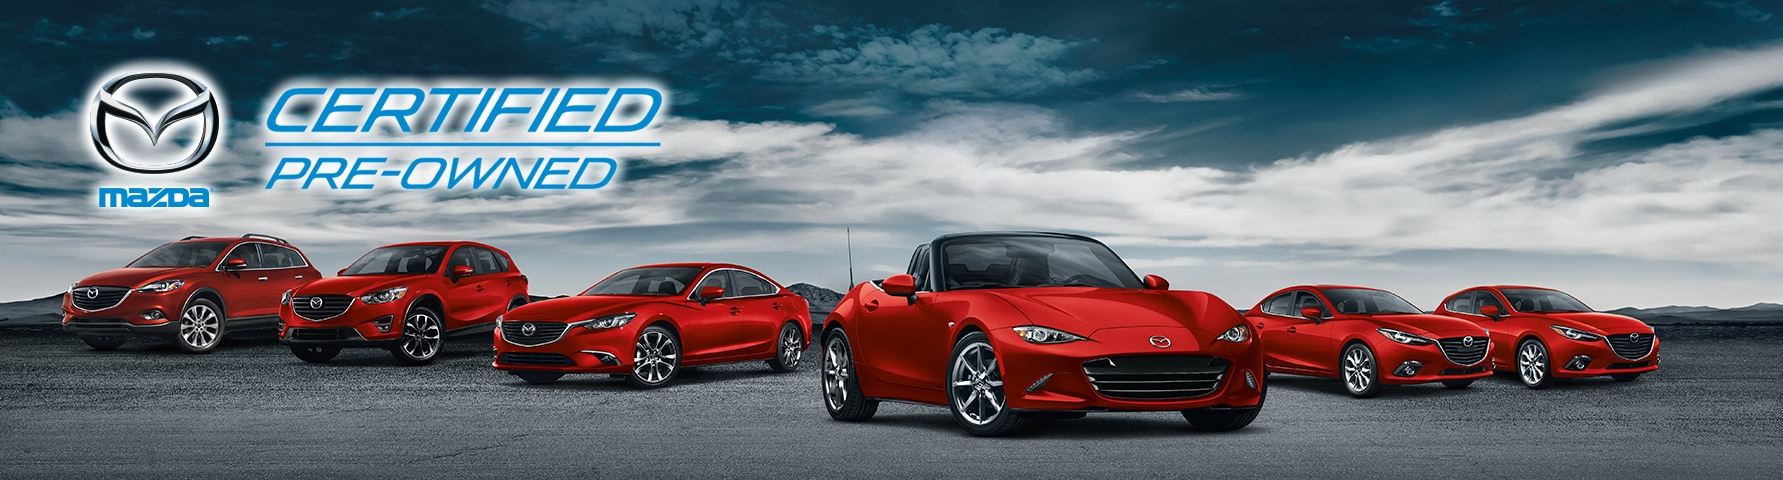 Gerry Gordon\'s Mazda | New Mazda dealership in Winnipeg, MB R3T 6A9